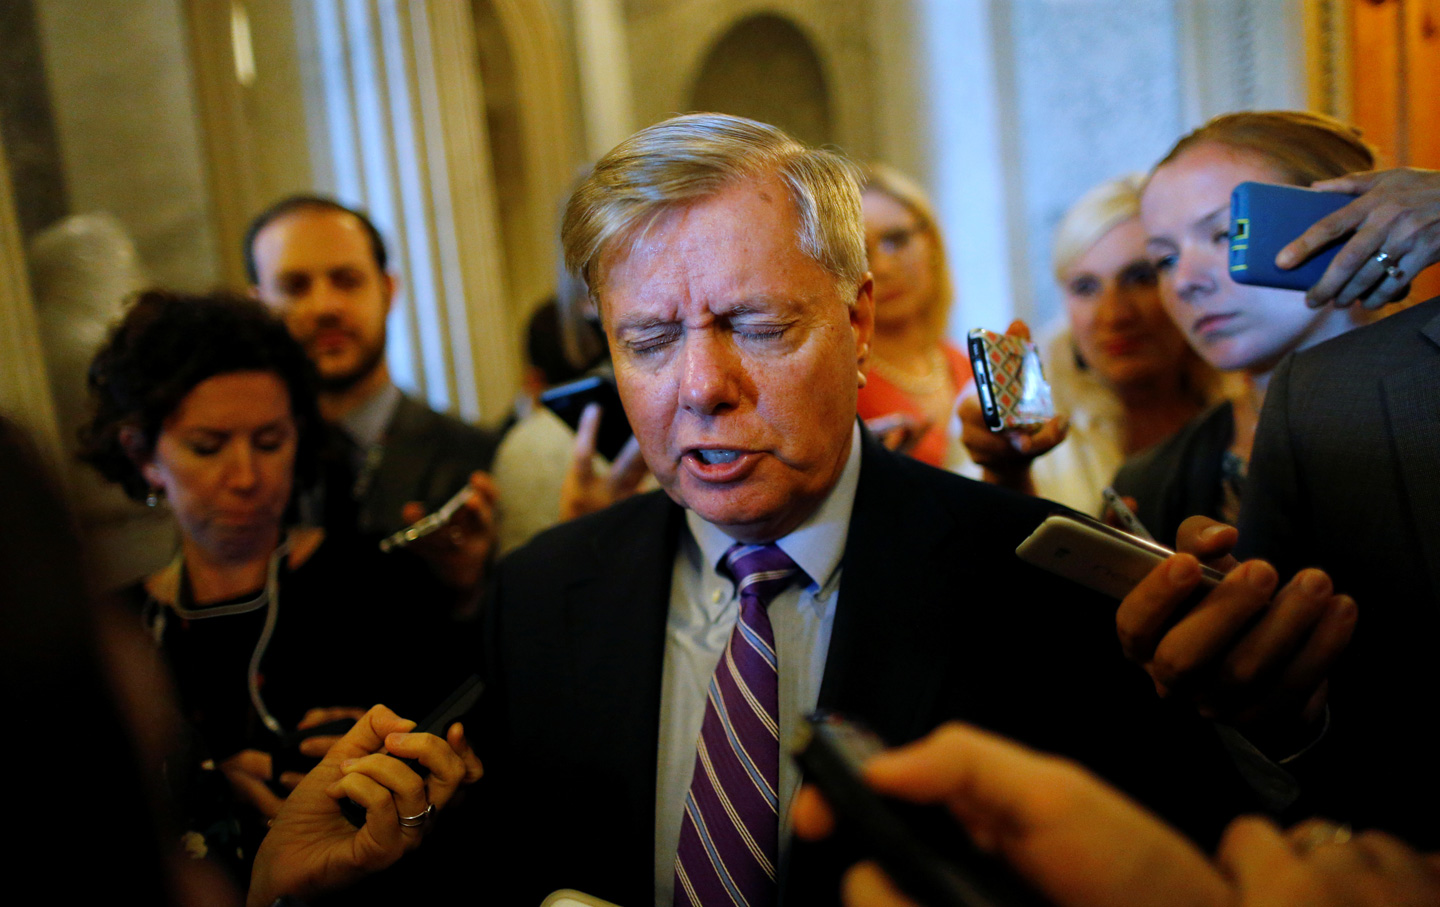 Lindsey-Graham-ACA-repeal-rtr-img